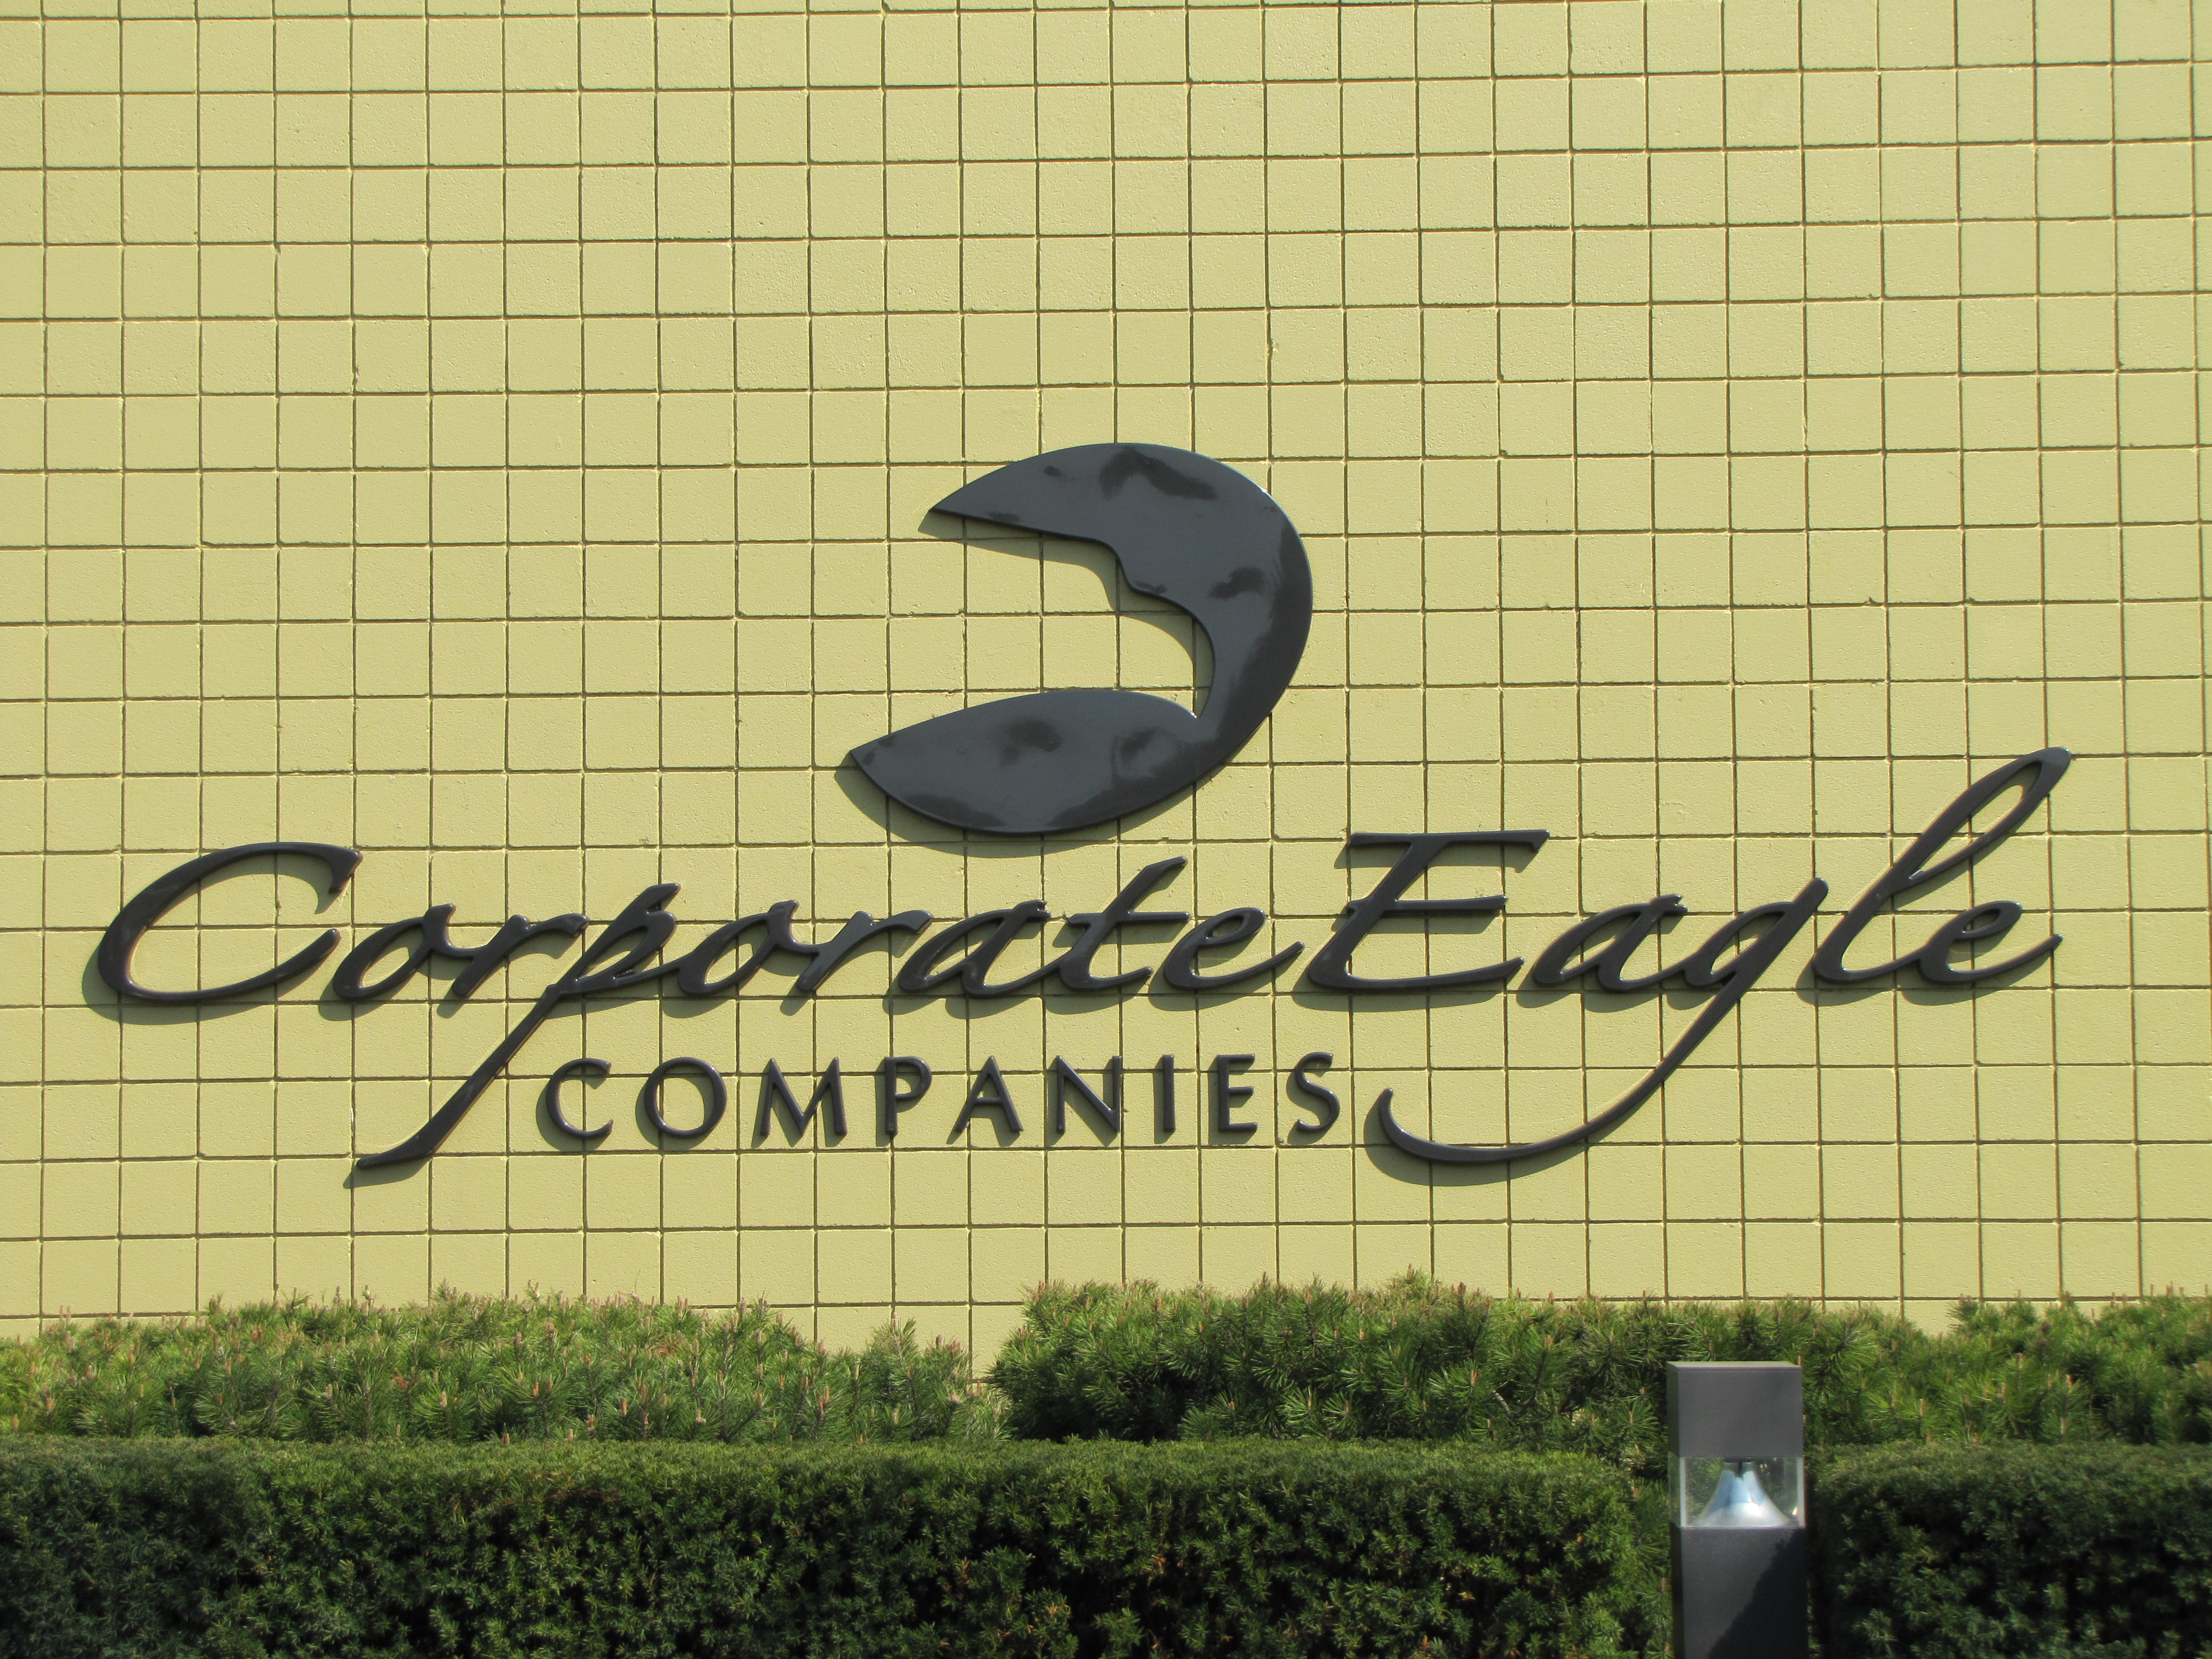 Corporate Eagle Gemini Letters